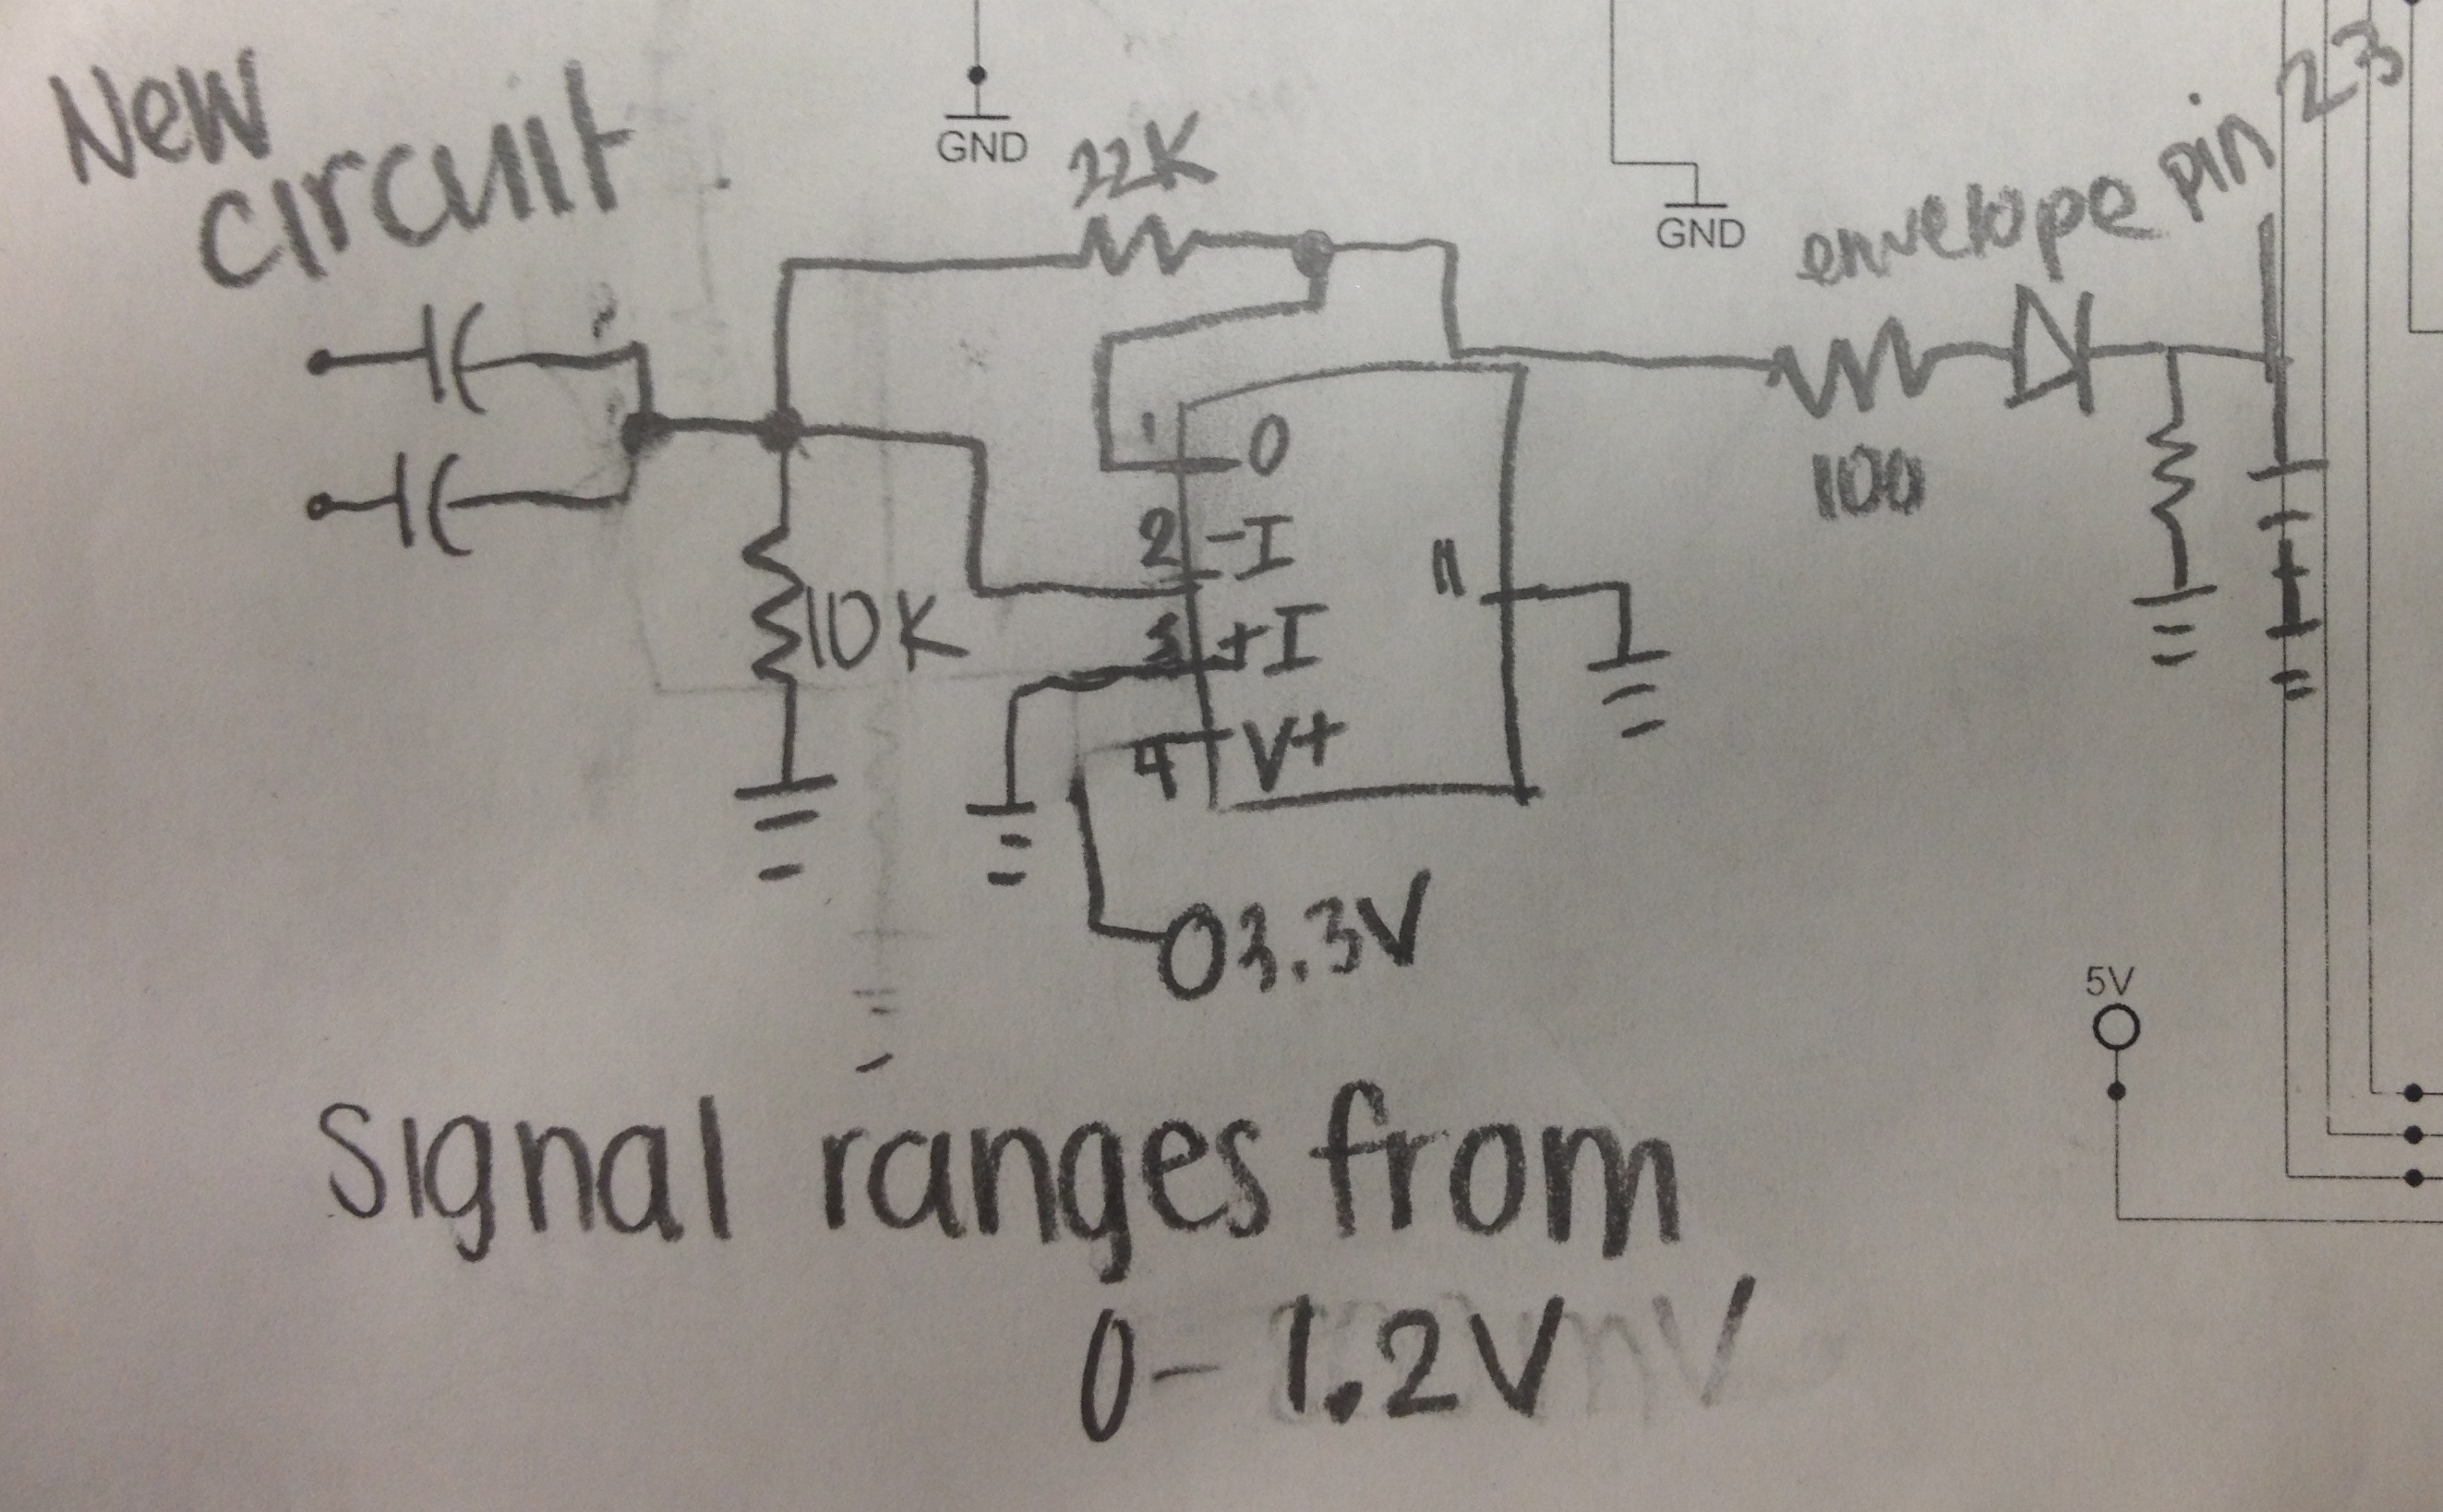 Courtney Laubachs Lab Notebook Eagle Schematic Capture Radio Button Circuit Flickr Photo Sharing This Gave A Voltage Range From 0 To About 12v Of The Signal Audio New And Output Is Depicted Below